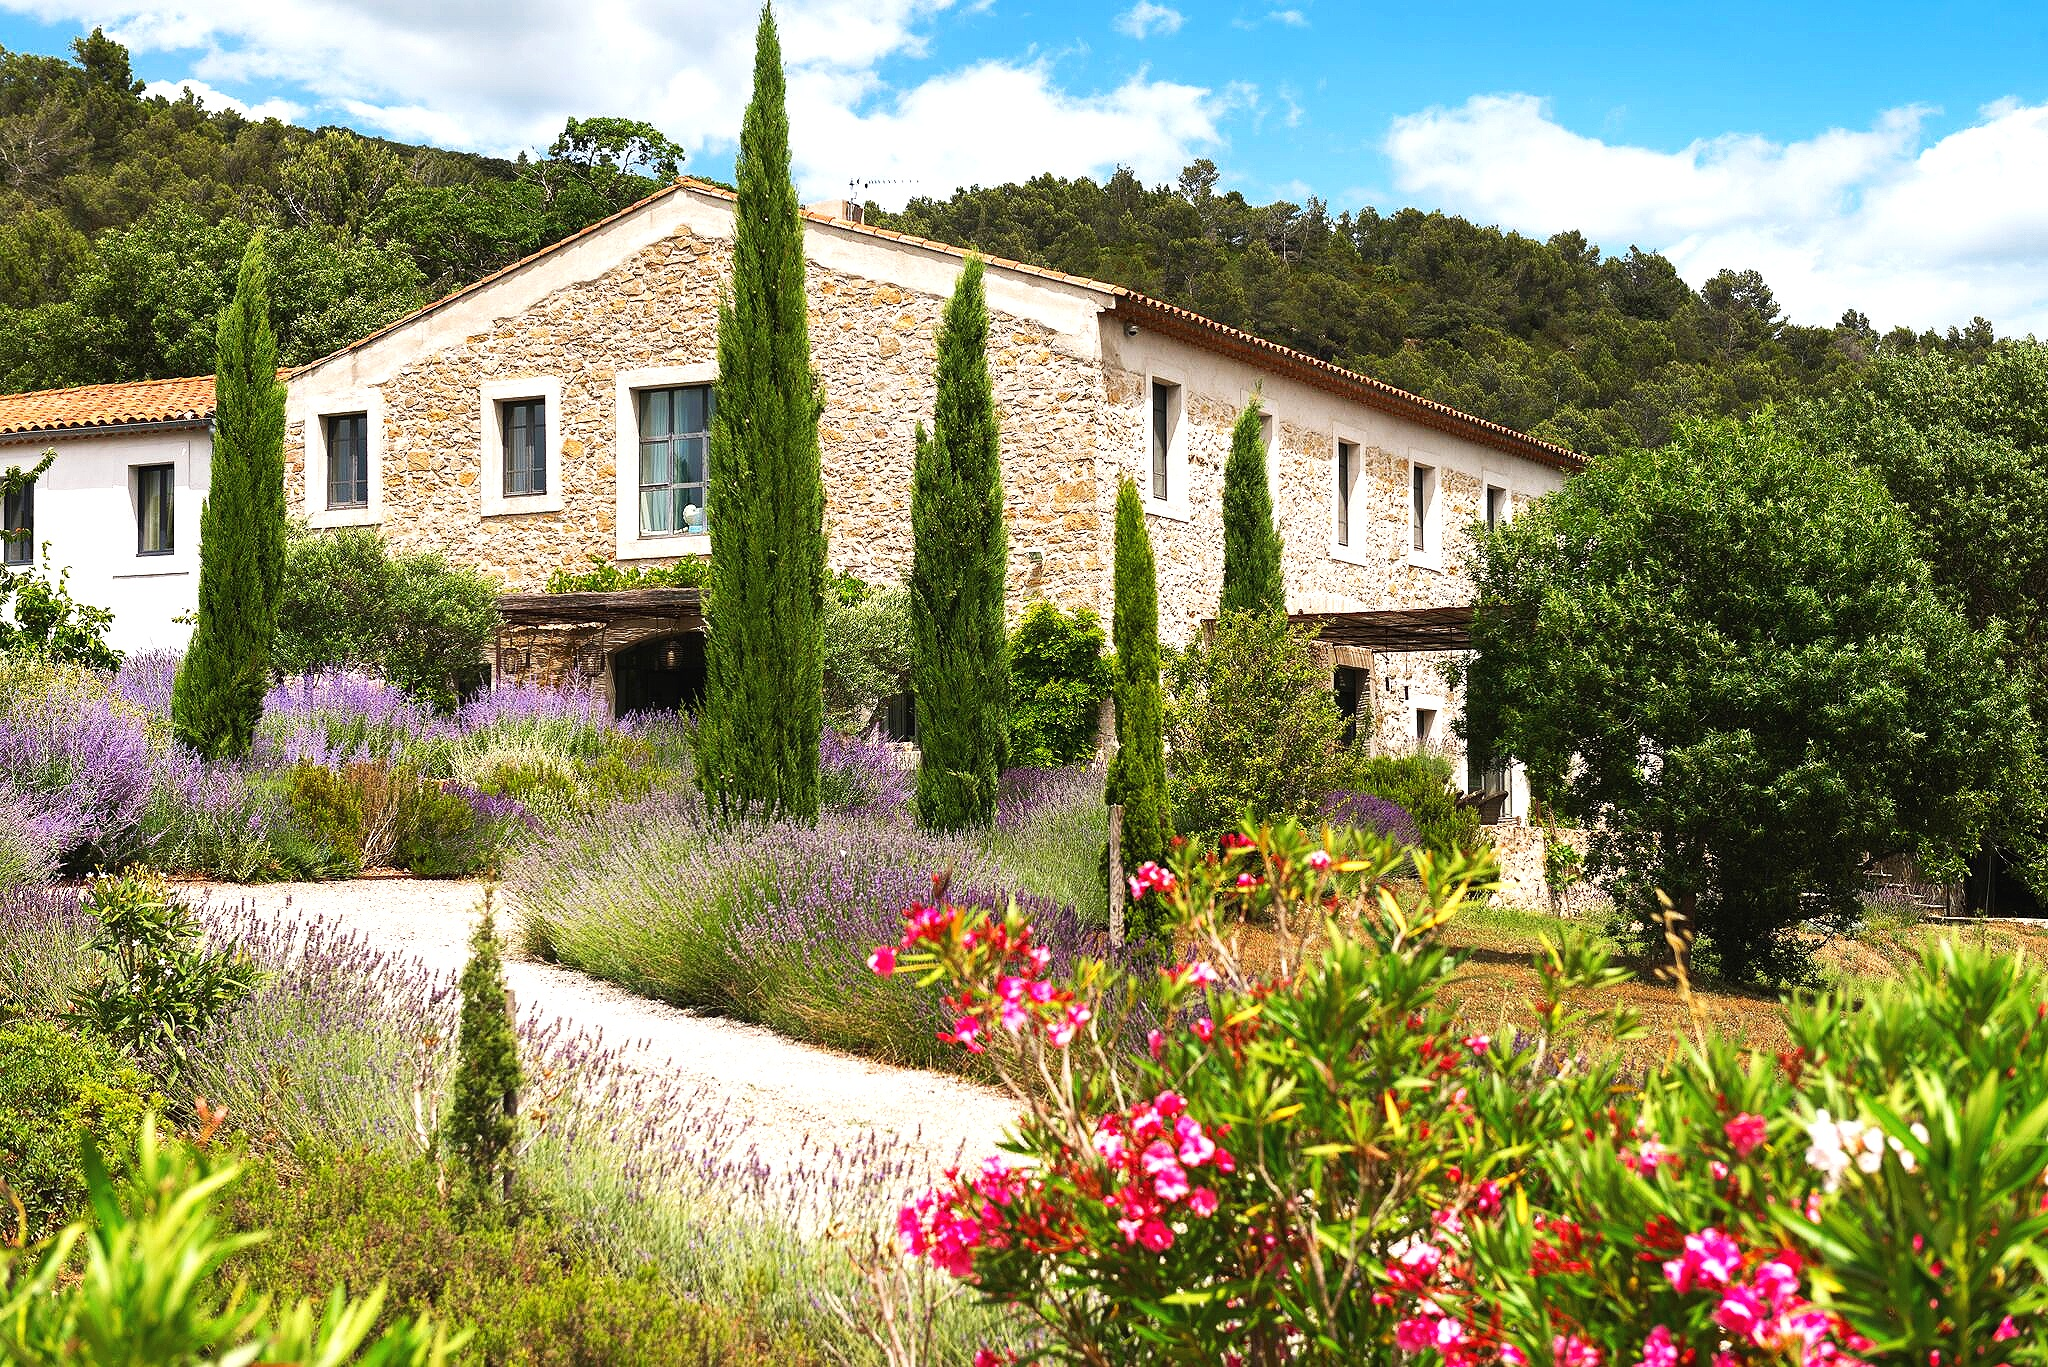 THE VENUE - Nestled in the Carcassonne HillsLavish, Private, Welcoming